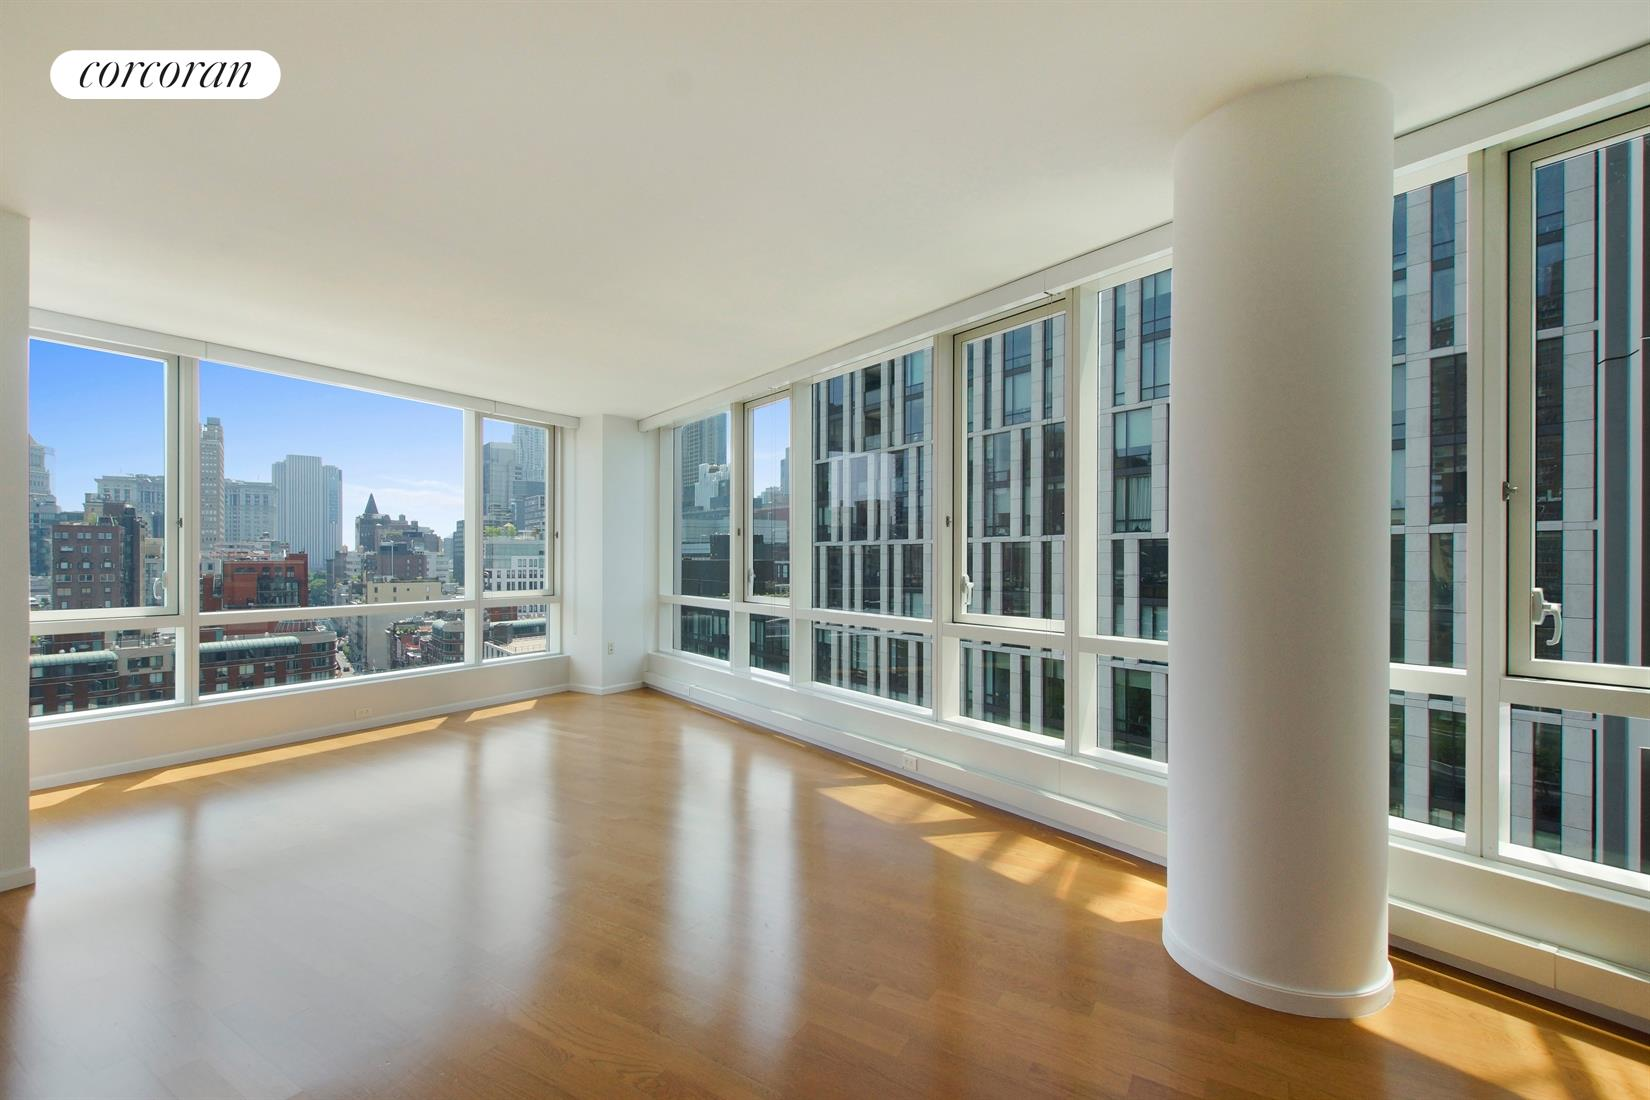 200 CHAMBERS ST, 16G, Living Room